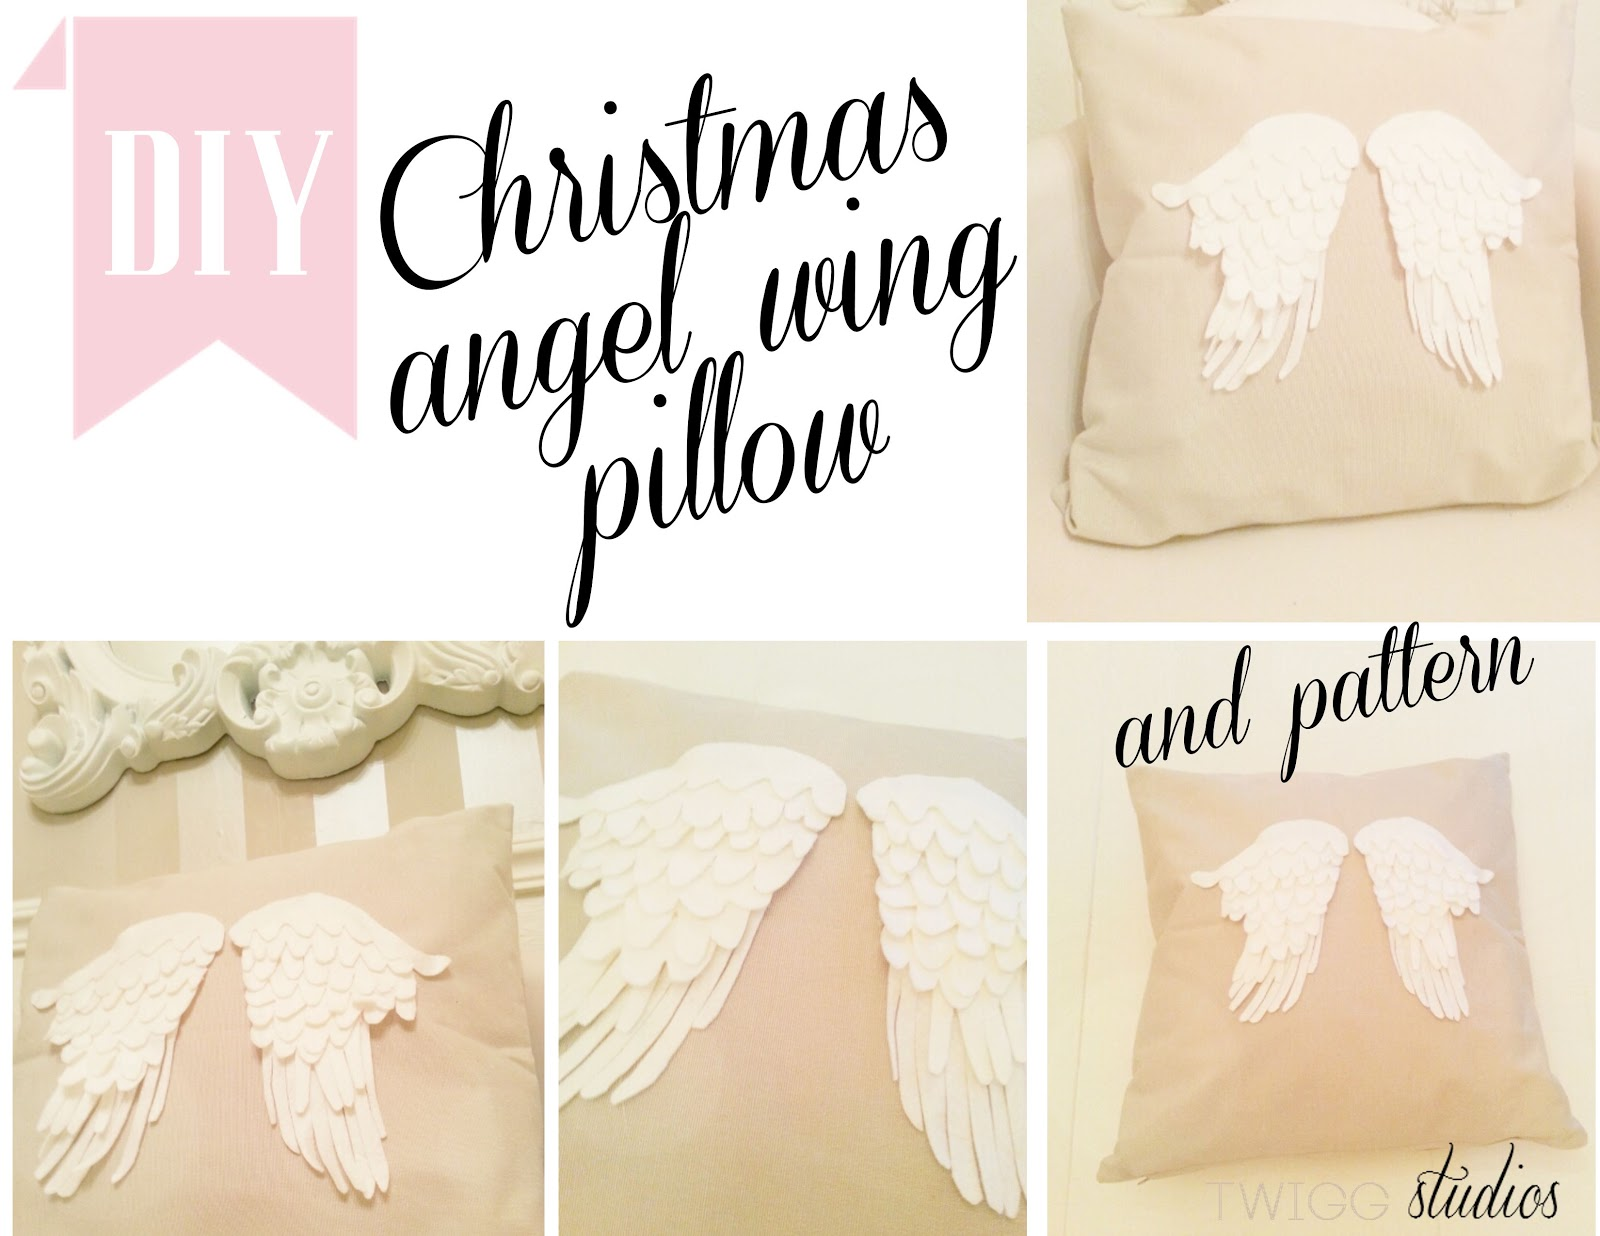 M Line Kopfkissen Angel Wing Pillow Twigg Studios